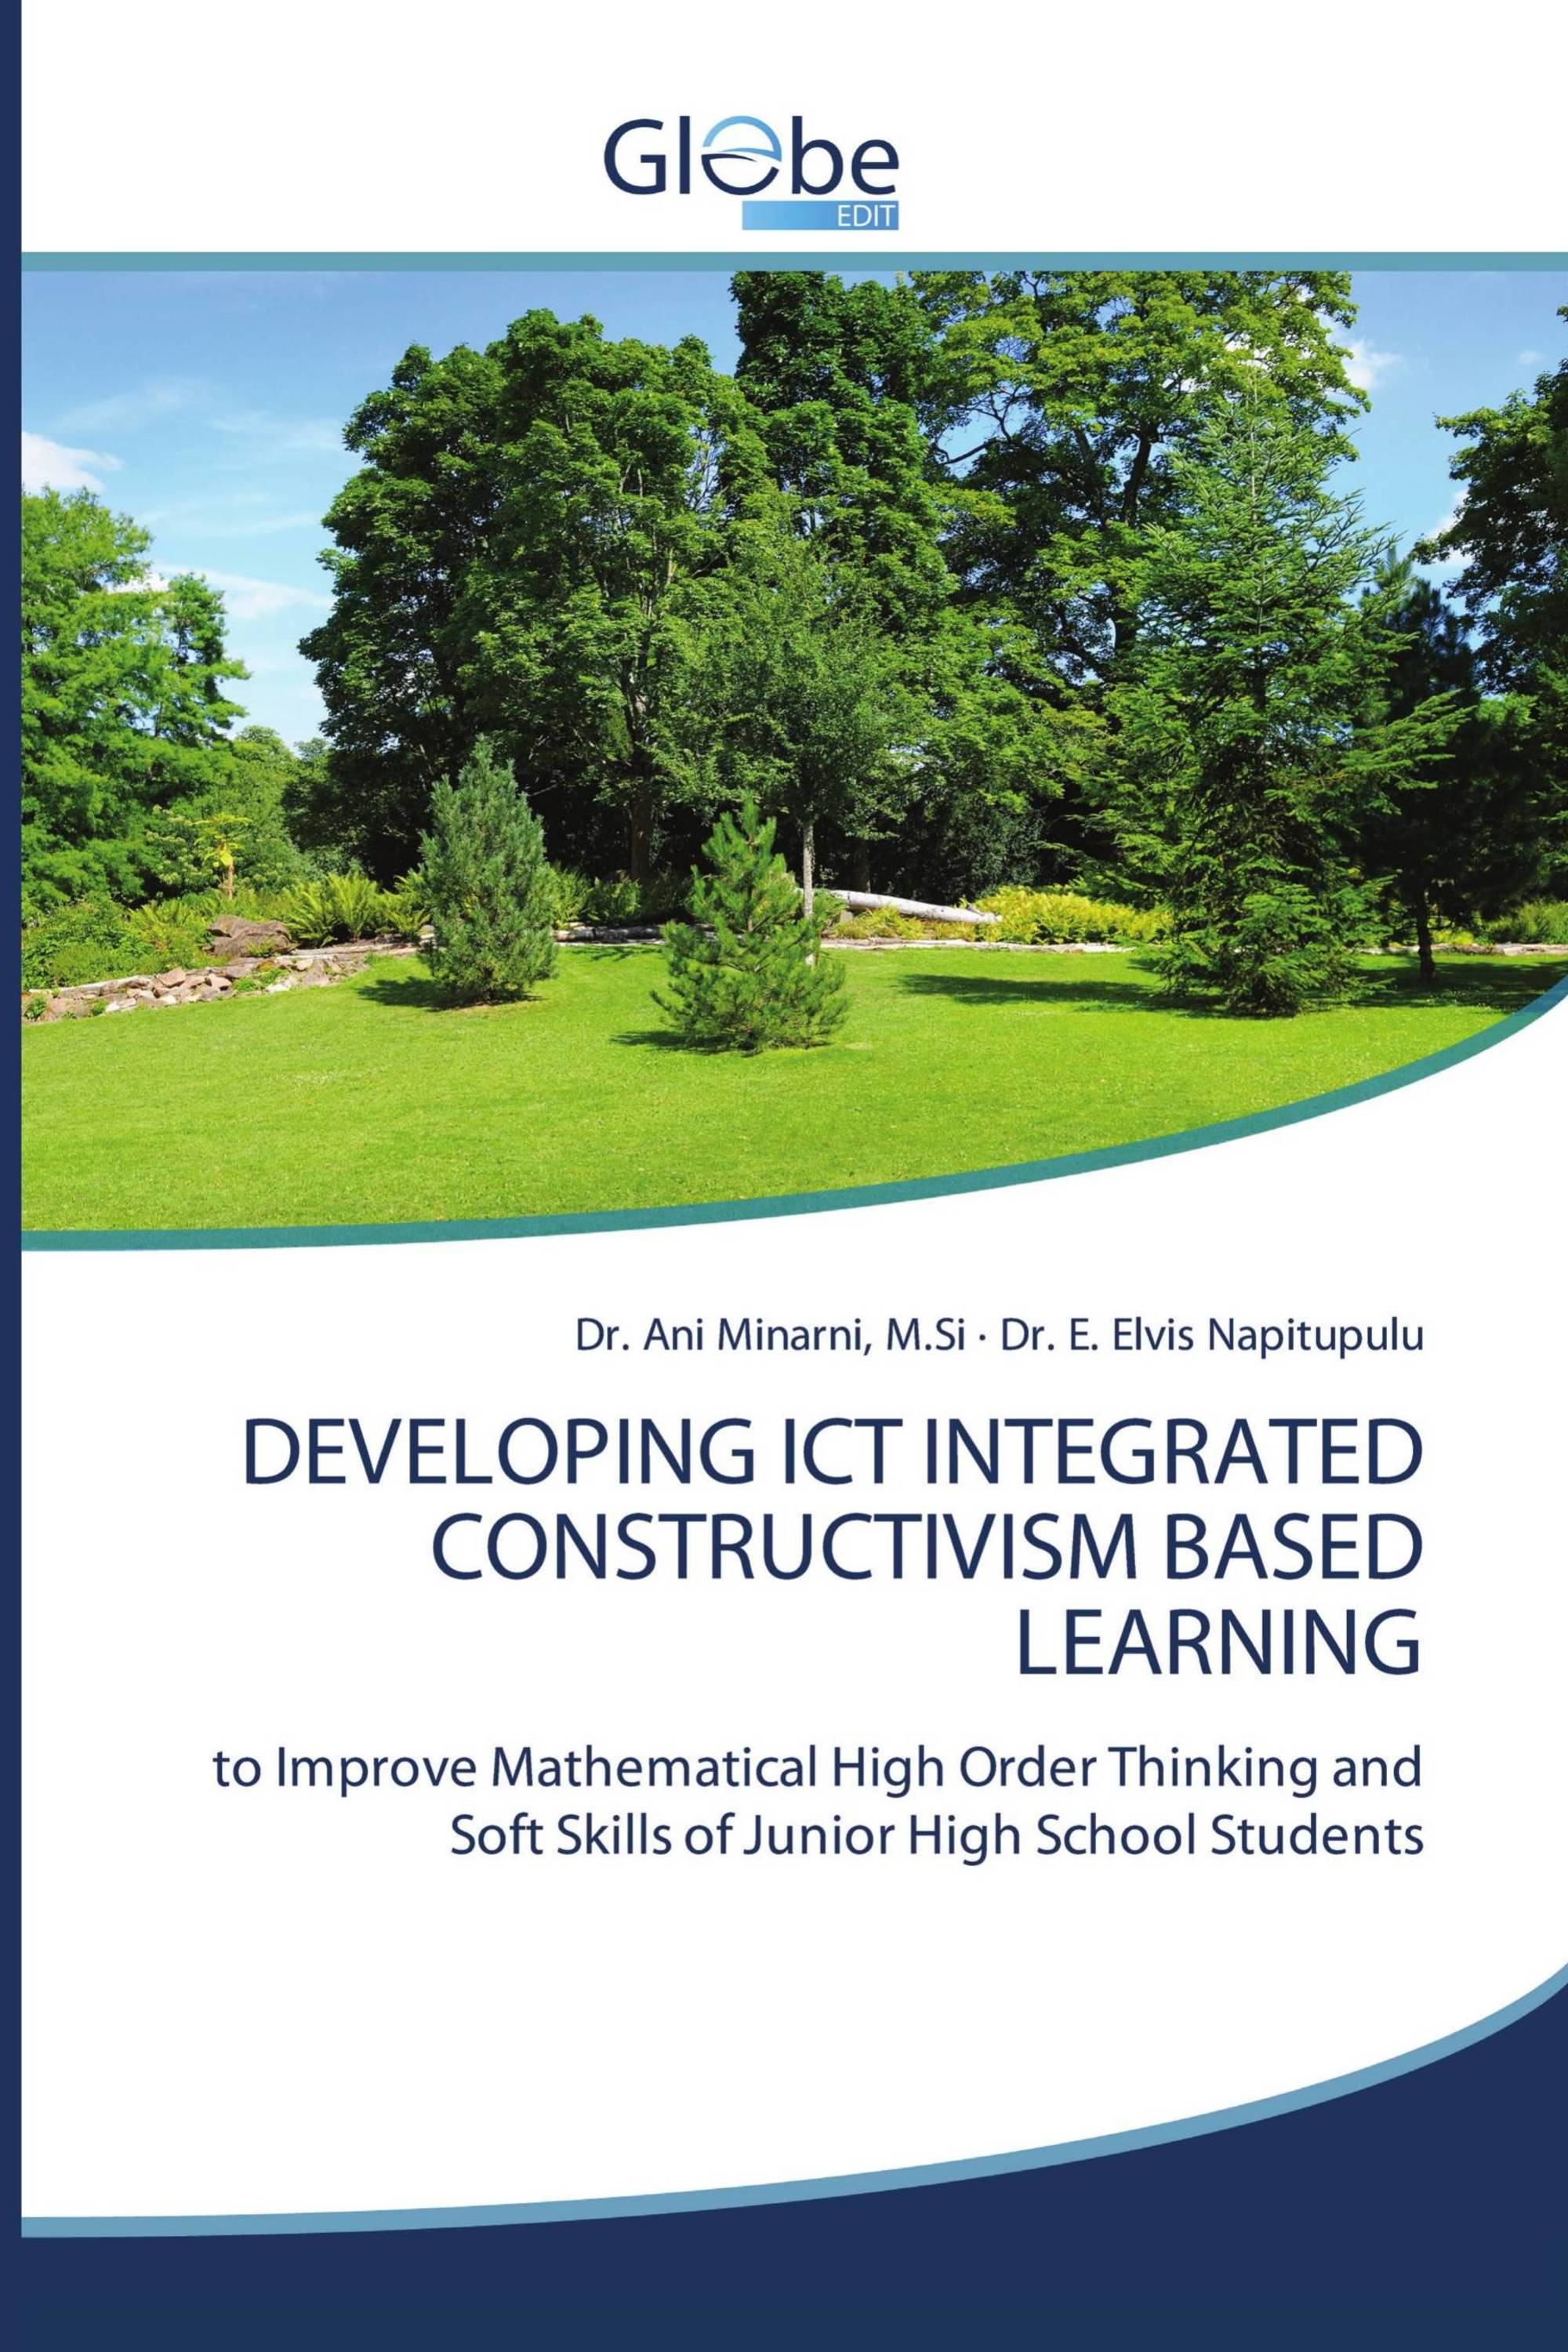 DEVELOPING ICT INTEGRATED CONSTRUCTIVISM BASED LEARNING